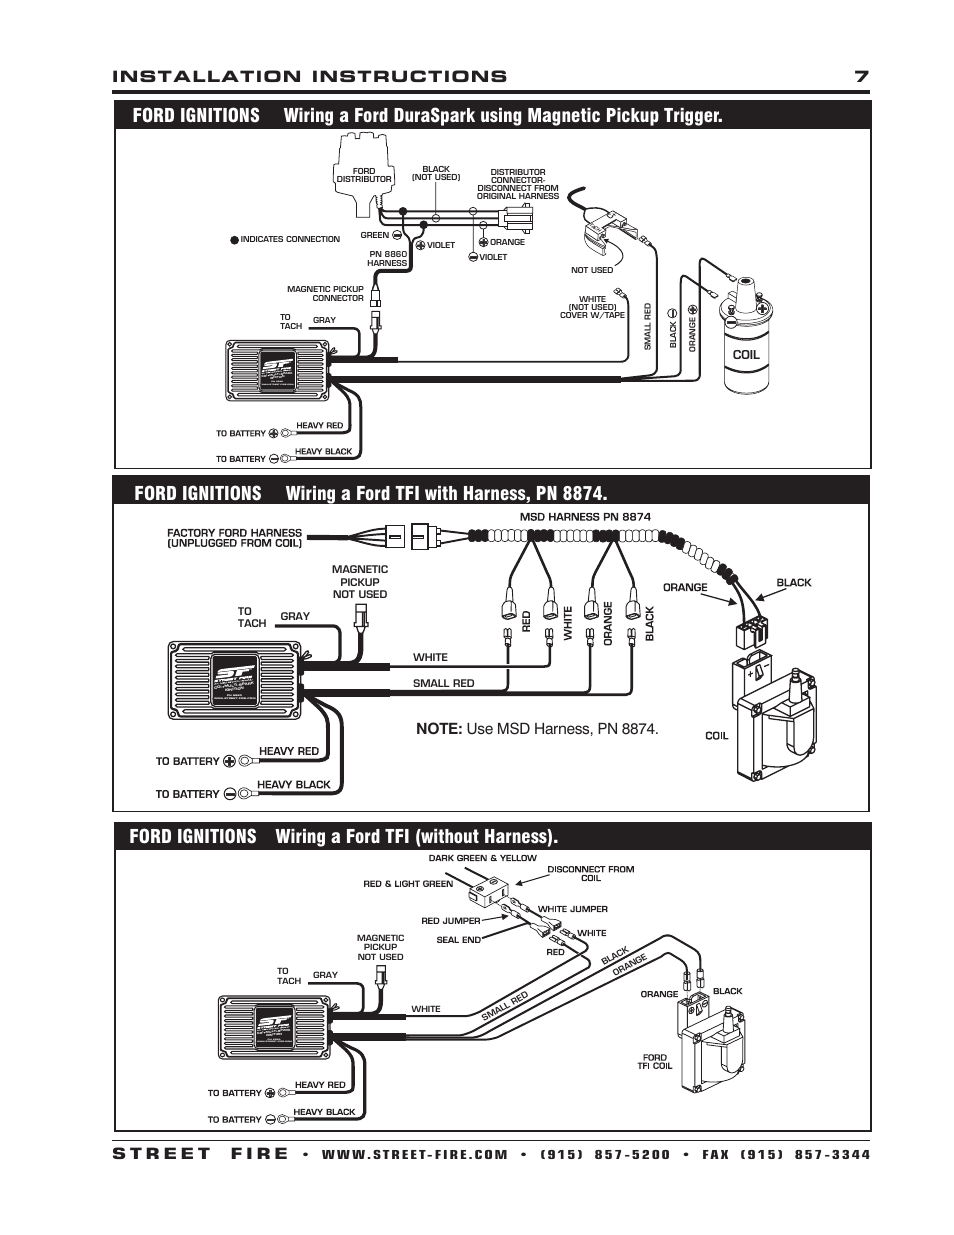 Msd Street Fire Ignition Wiring Diagram - Wiring Diagram Data on msd hei wiring-diagram, msd ford wiring diagrams, lokar wiring diagram, msd ignition system, msd mounting, msd ignition coil, ford alternator wiring diagram, msd 7al box diagram, msd ignition connector, msd 2 step wiring-diagram, typical ignition system diagram, pertronix wiring diagram, meziere wiring diagram, nos wiring diagram, taylor wiring diagram, msd ignition installation, msd 6a wiring-diagram, auto meter wiring diagram, painless wiring wiring diagram, smittybilt wiring diagram,